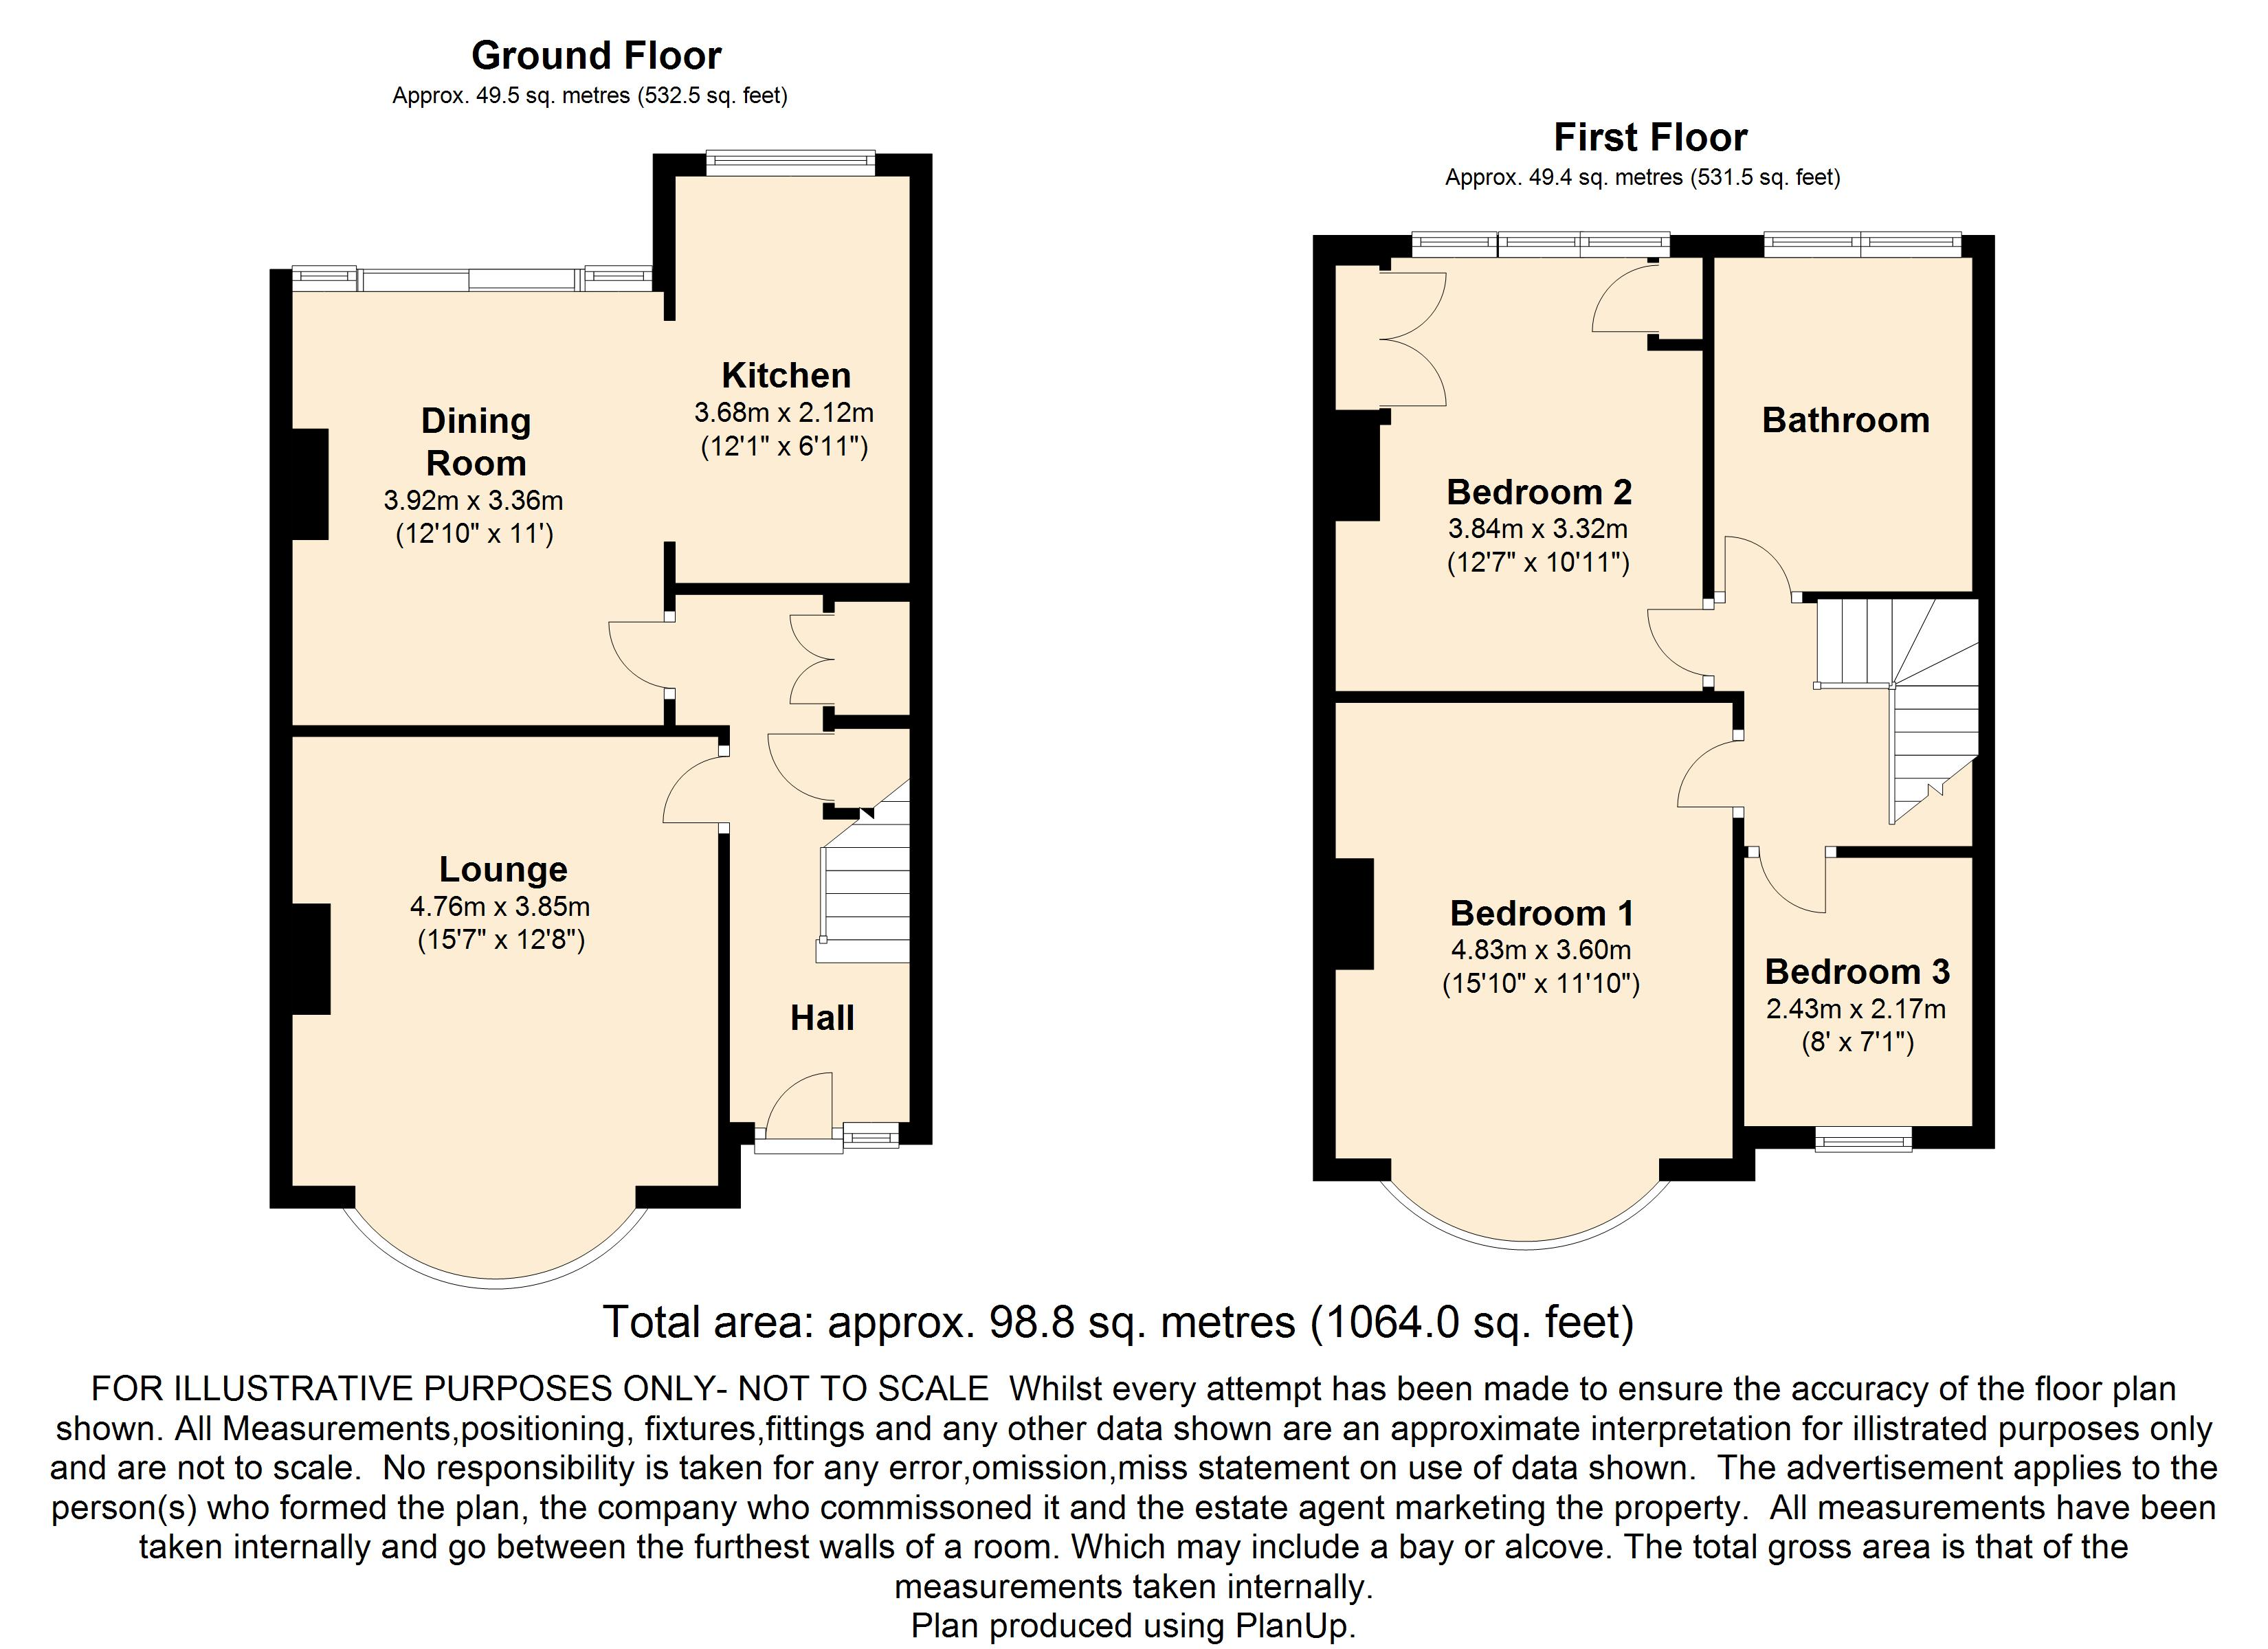 31_Priory_Ave,_Cheam FLOOR PLAN